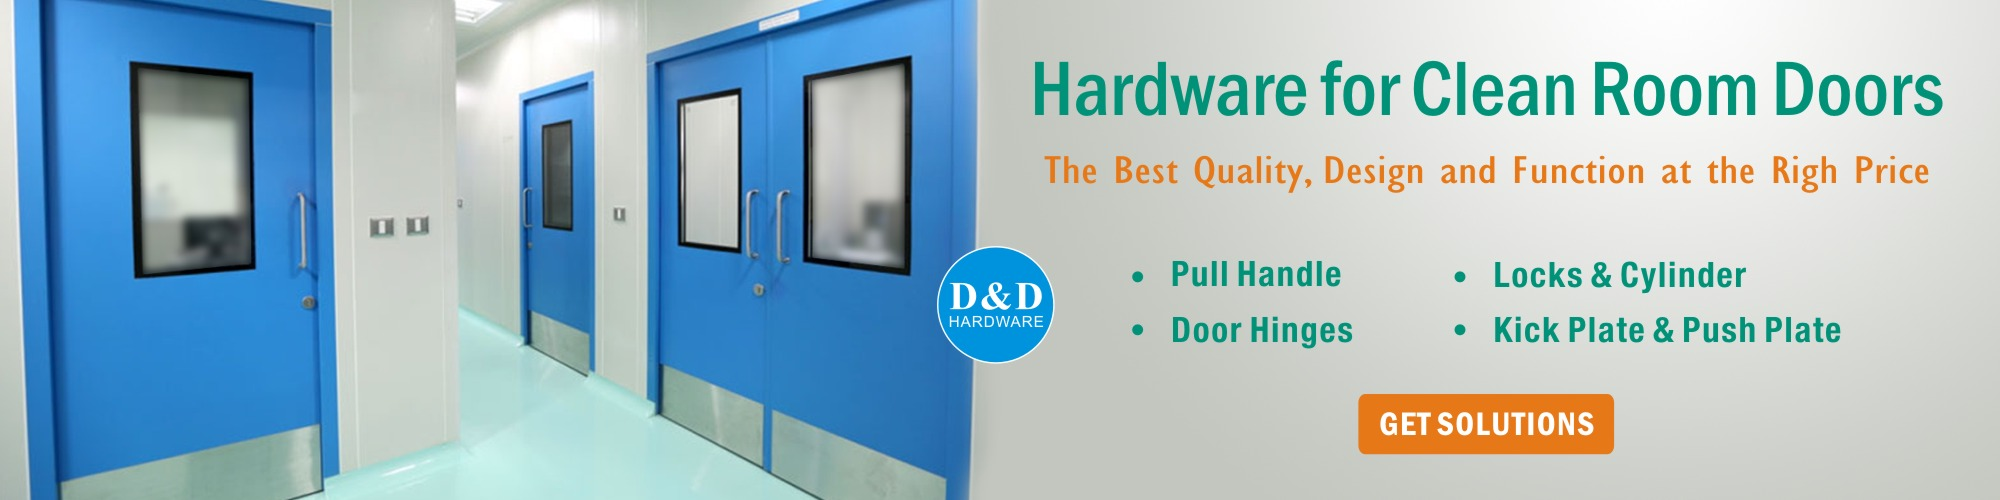 Door Hardware for Clean Room Doors D&D Hardware